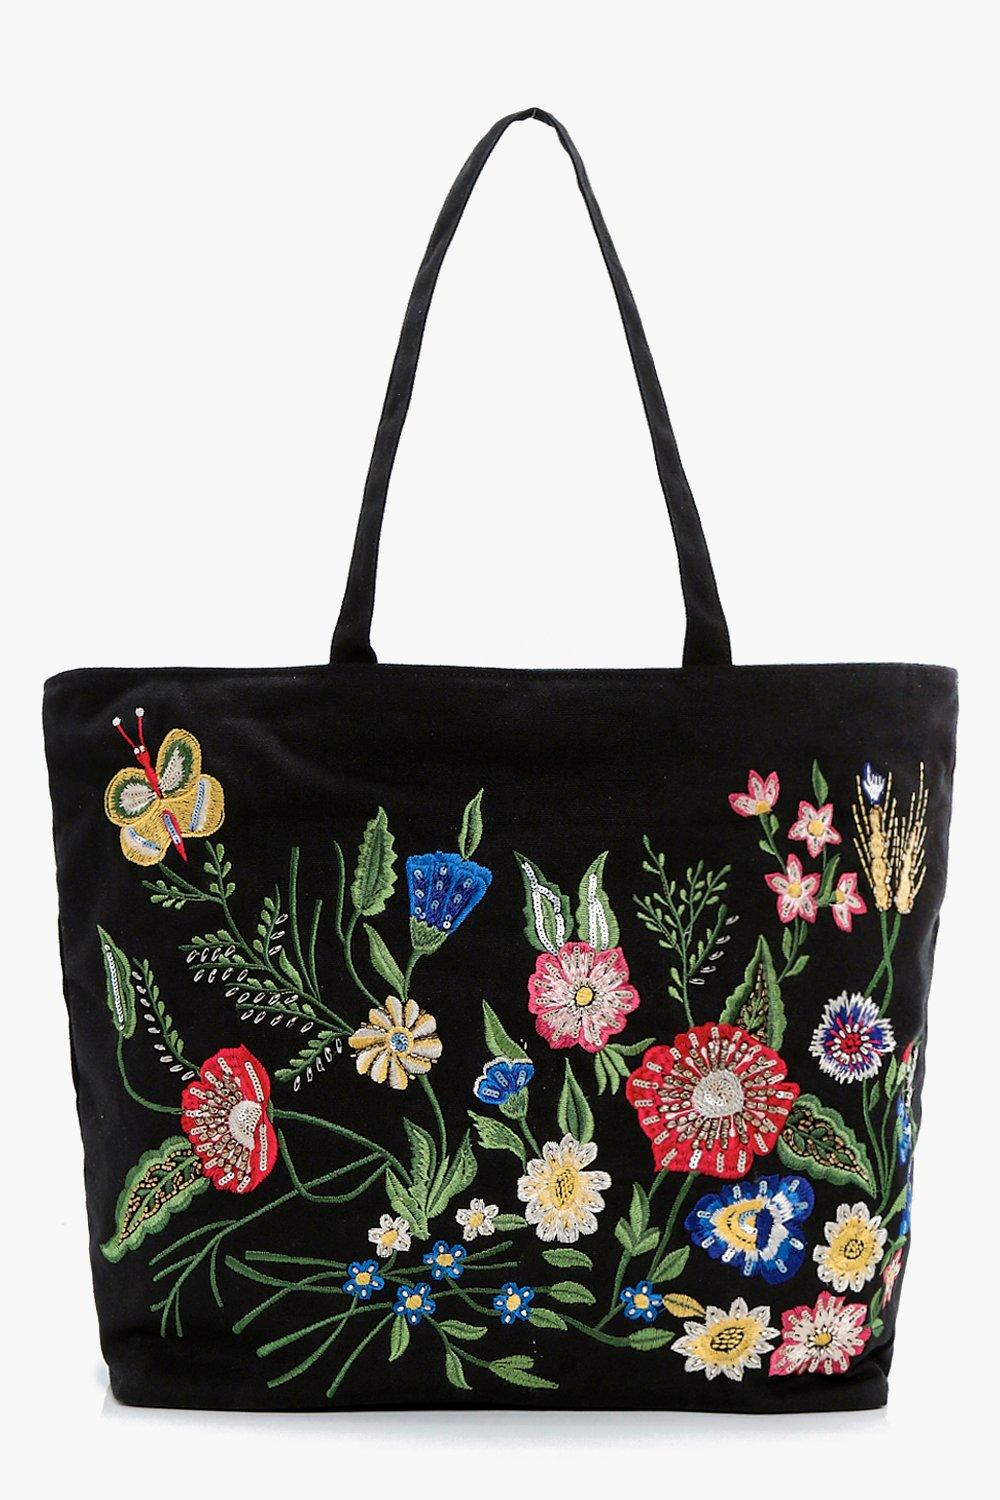 Butterfly Embroidered Shopper Bag - black - Caroli